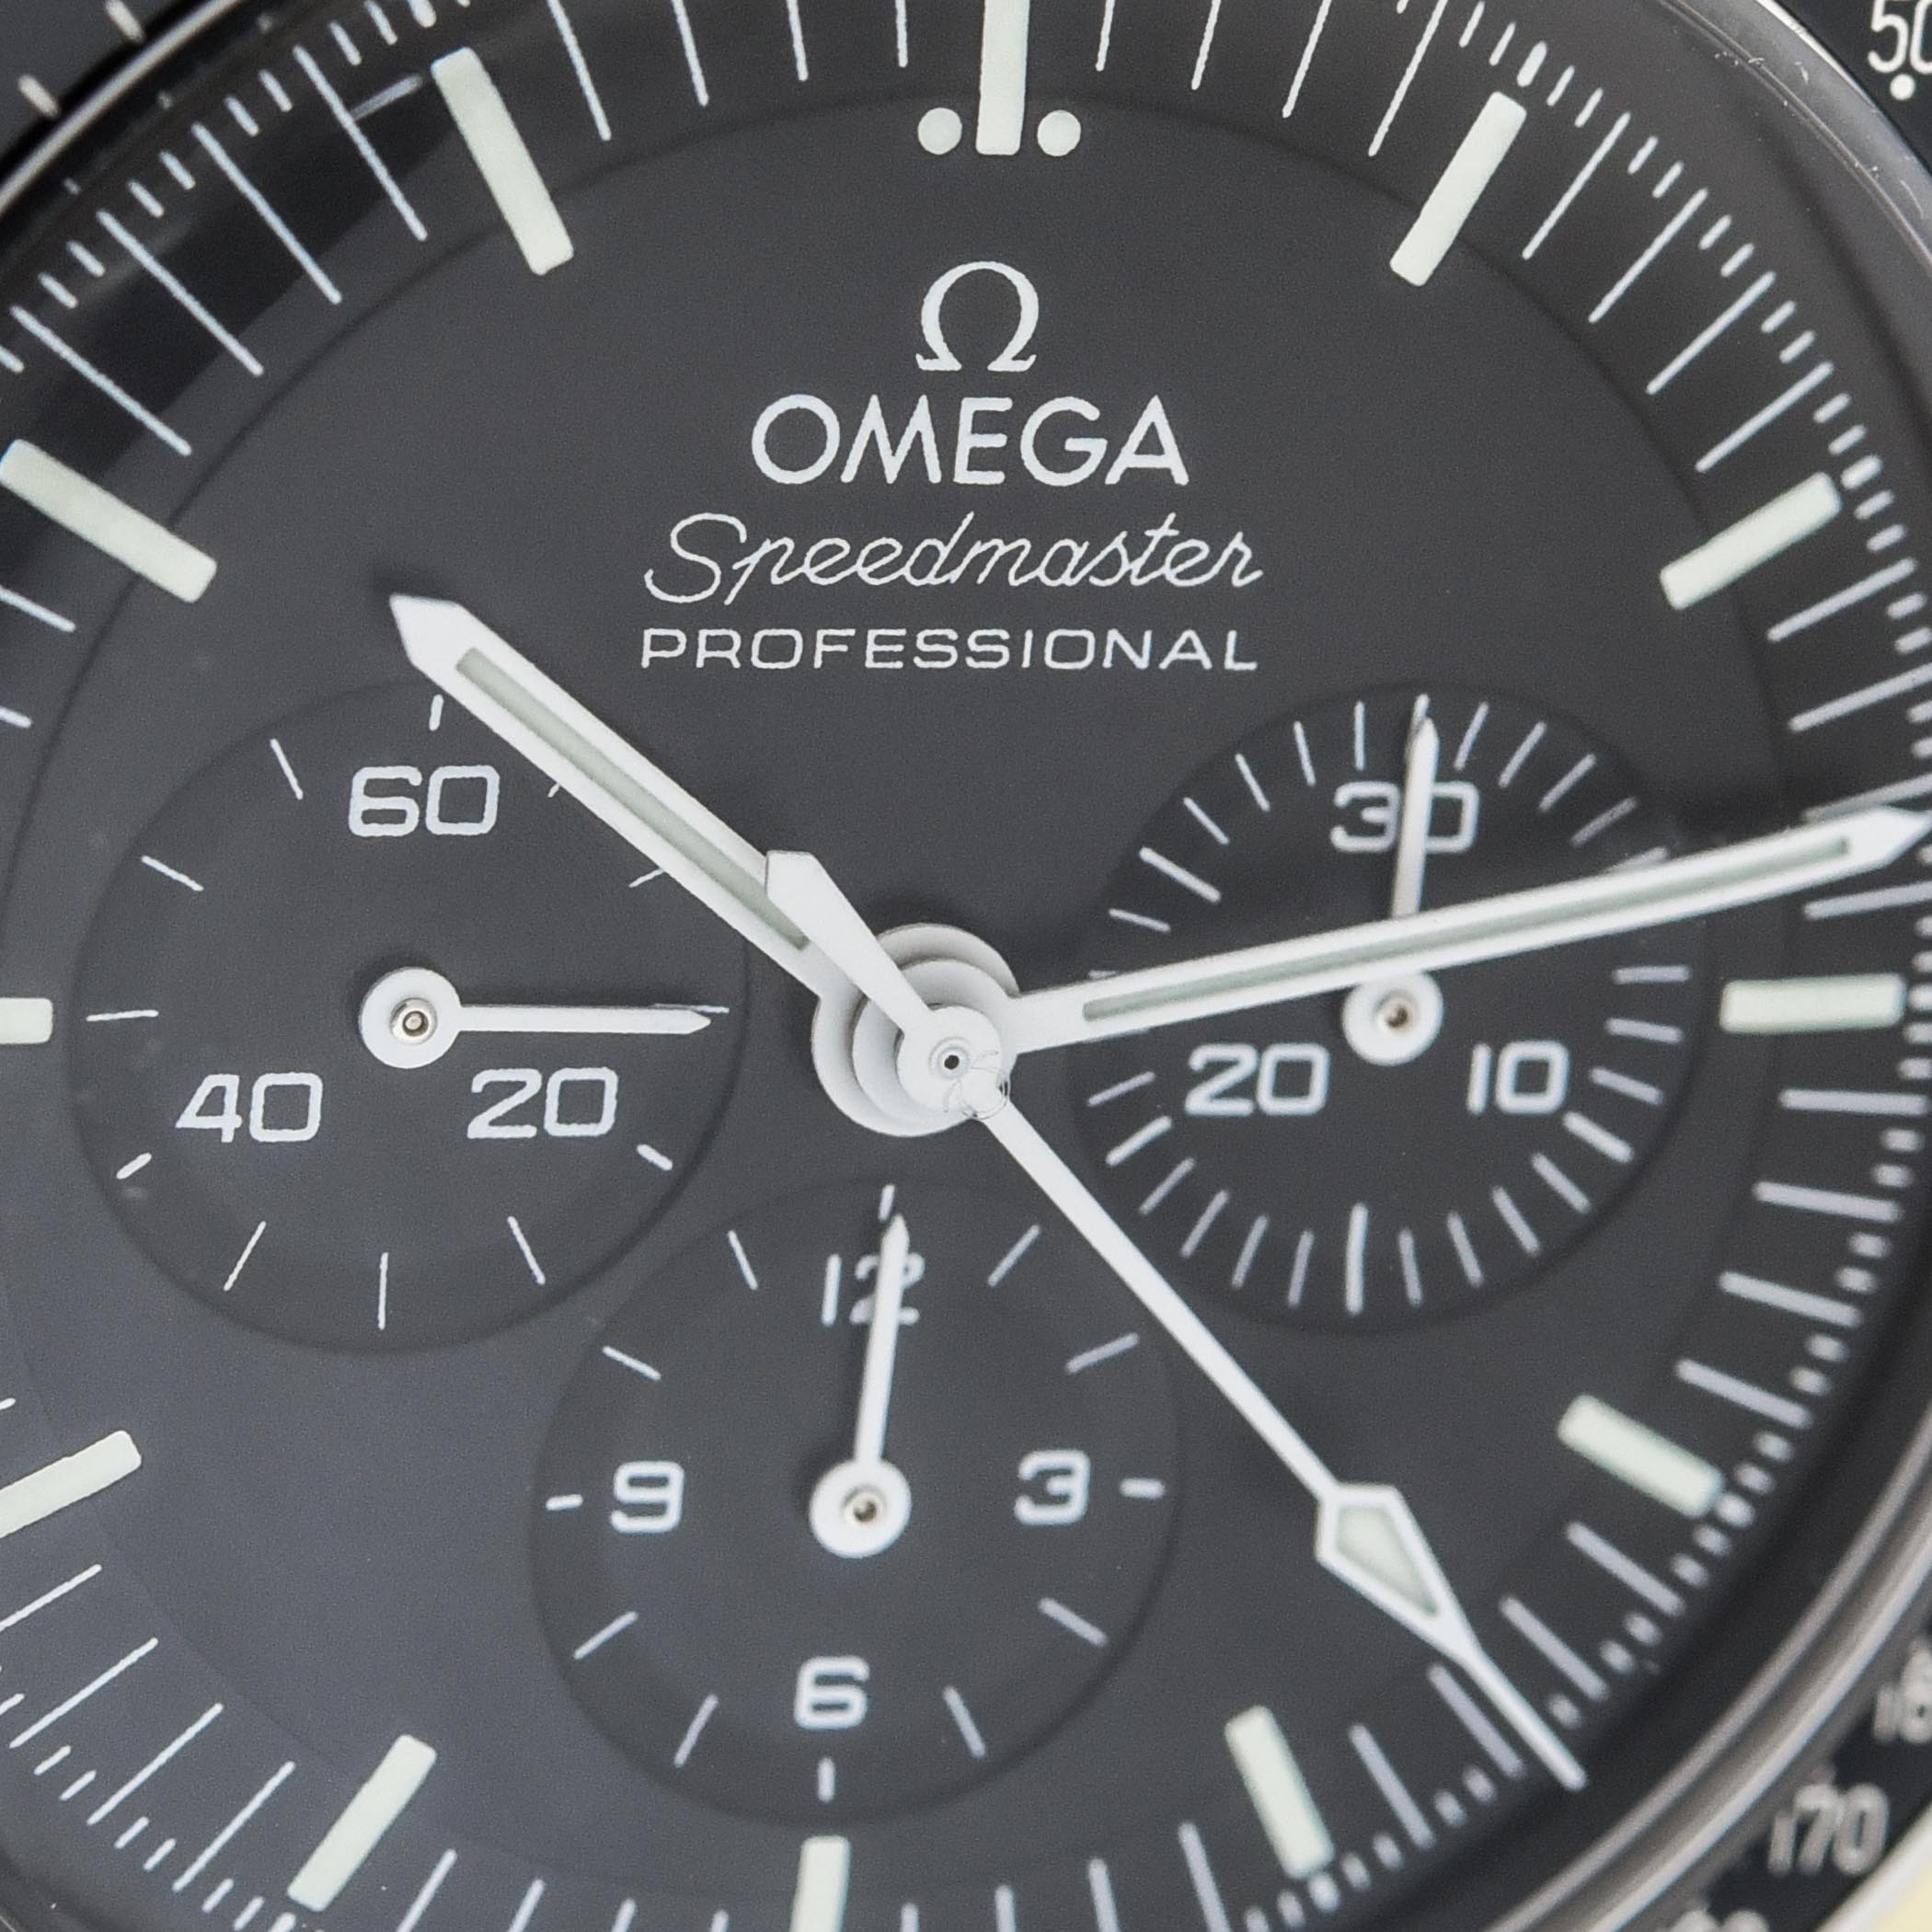 Omega Speedmaster Moonwatch Professional Master Chronometer Co-Axial 2021 - review - 25